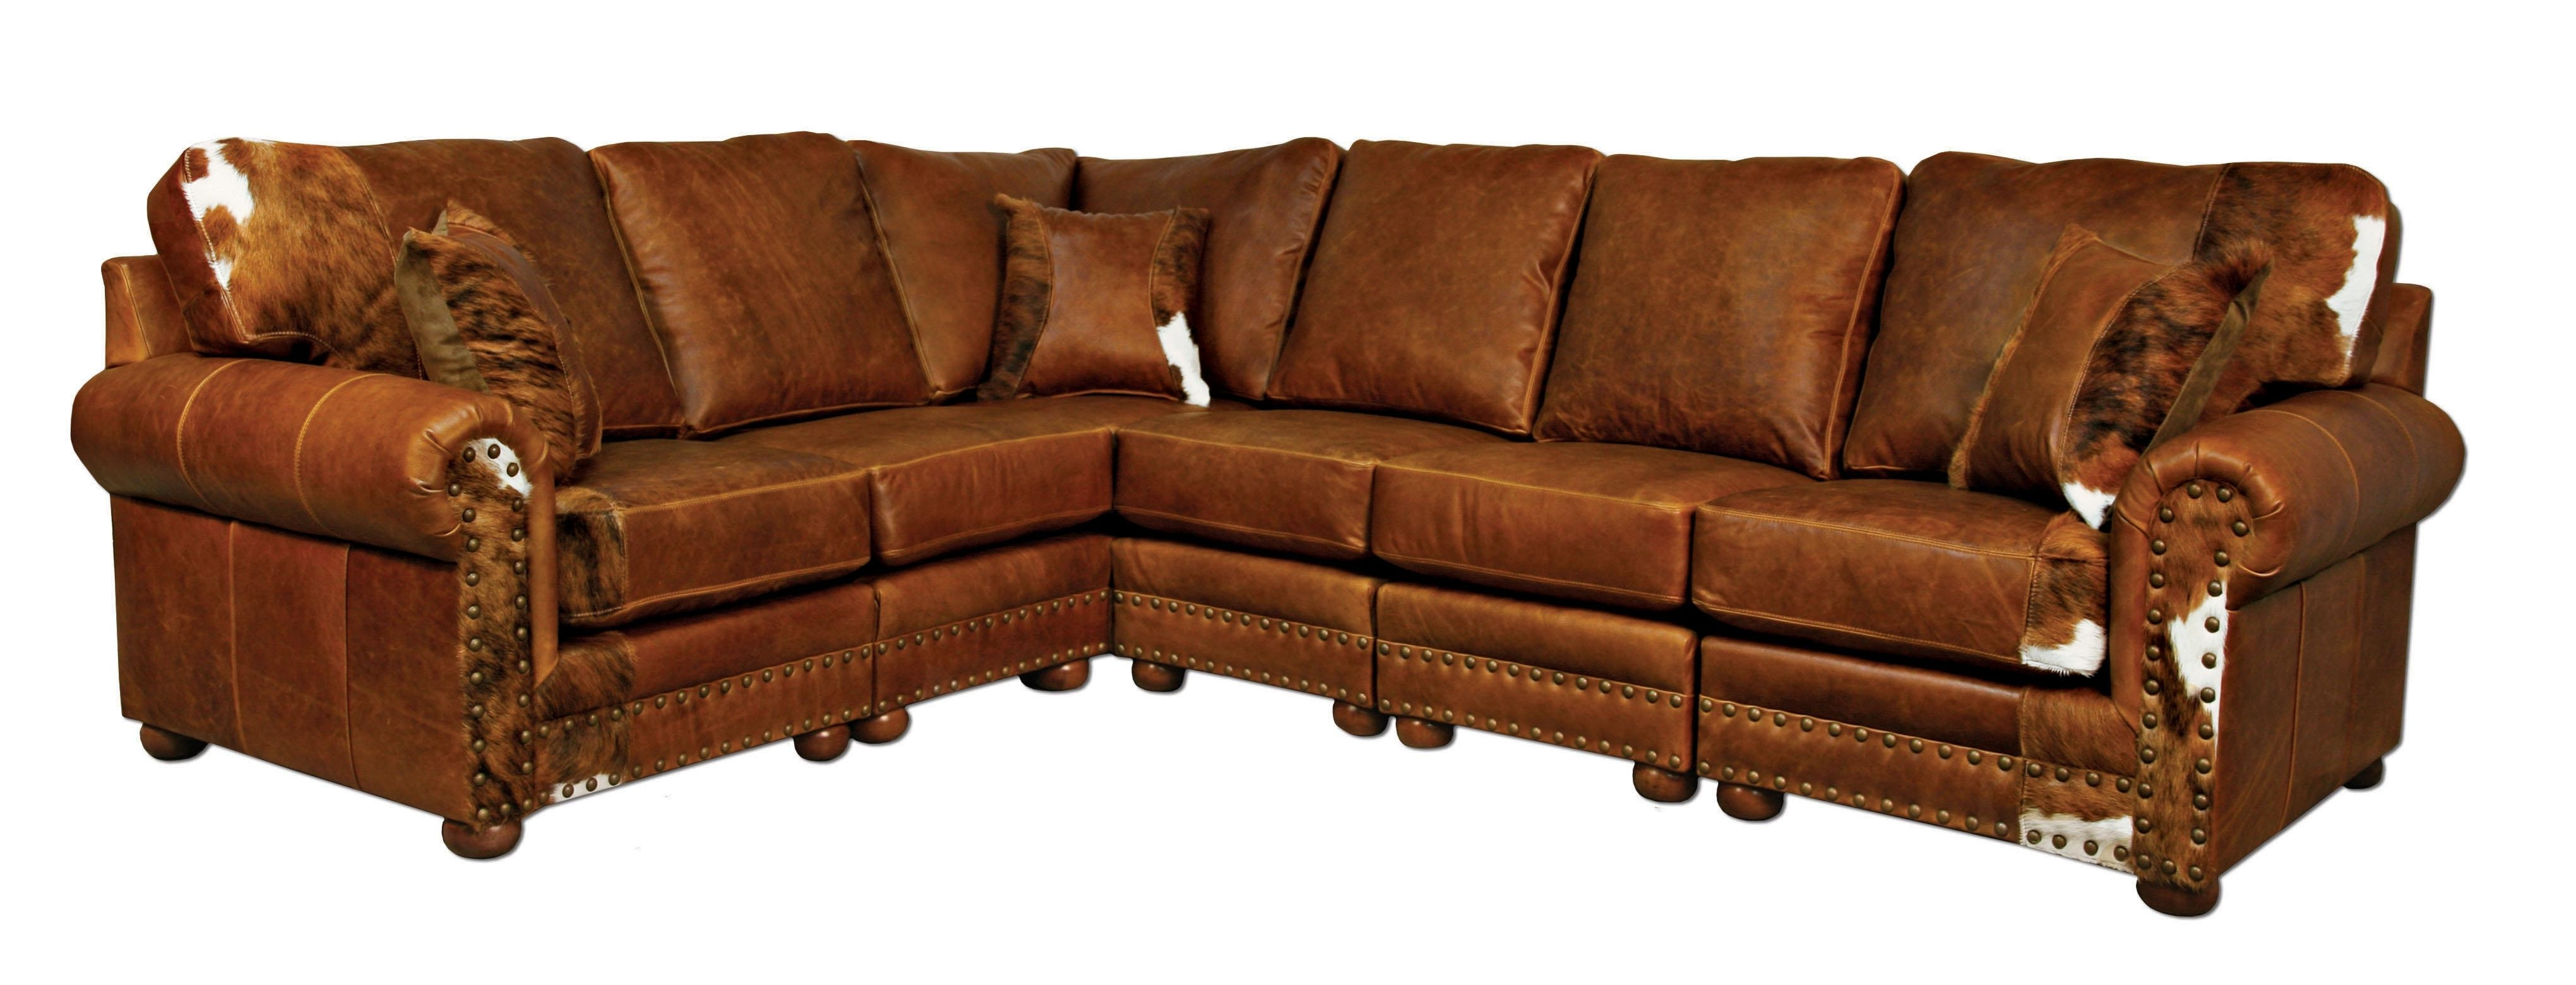 Western Style Sectional Sofas Within Most Recent Sectional Sofa Design: Amazing Western Sectional Sofa Western (View 5 of 20)